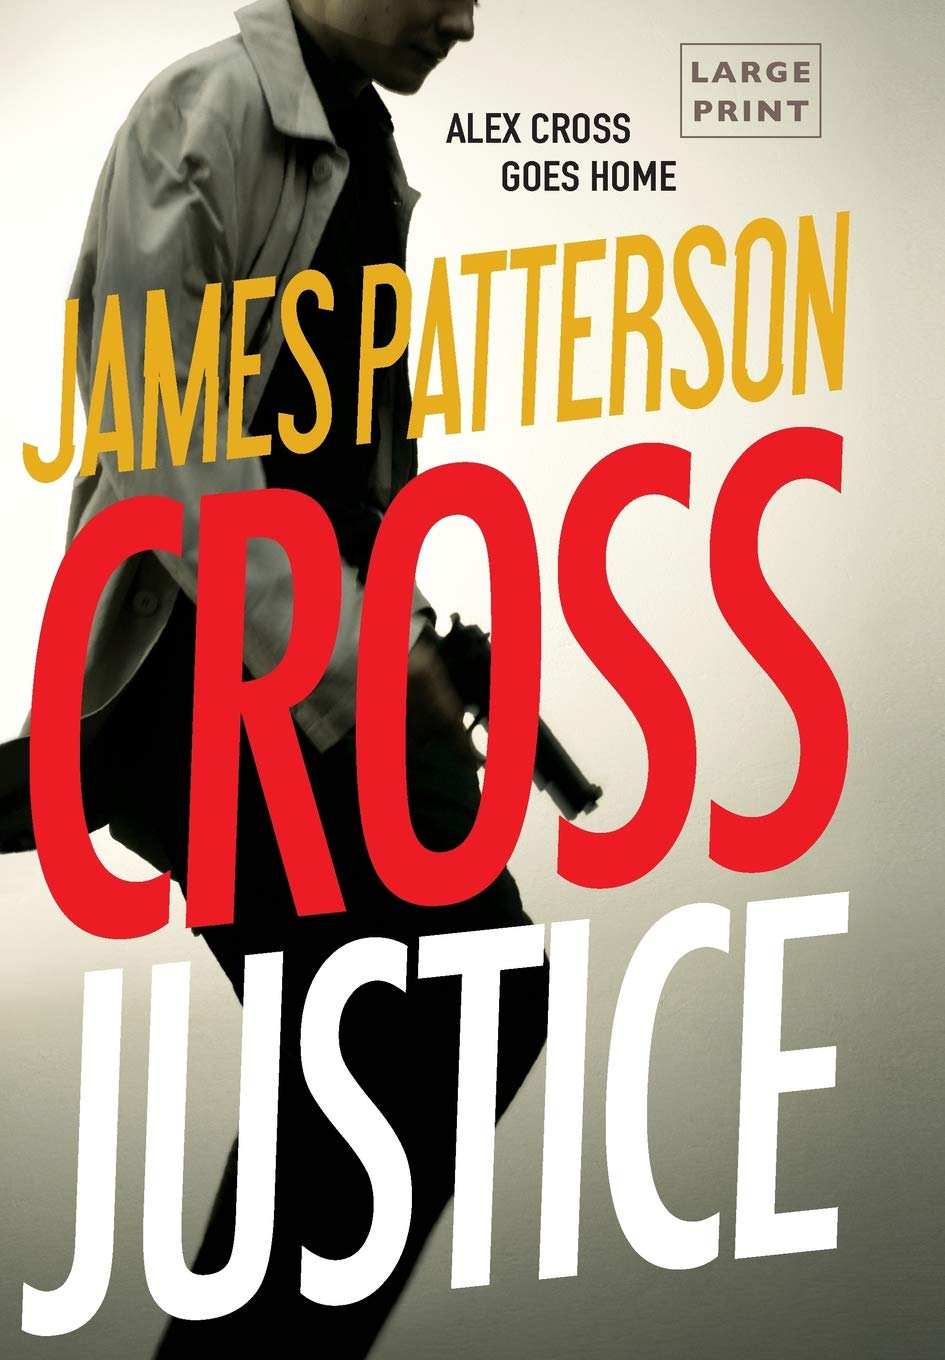 alex cross books in reading order